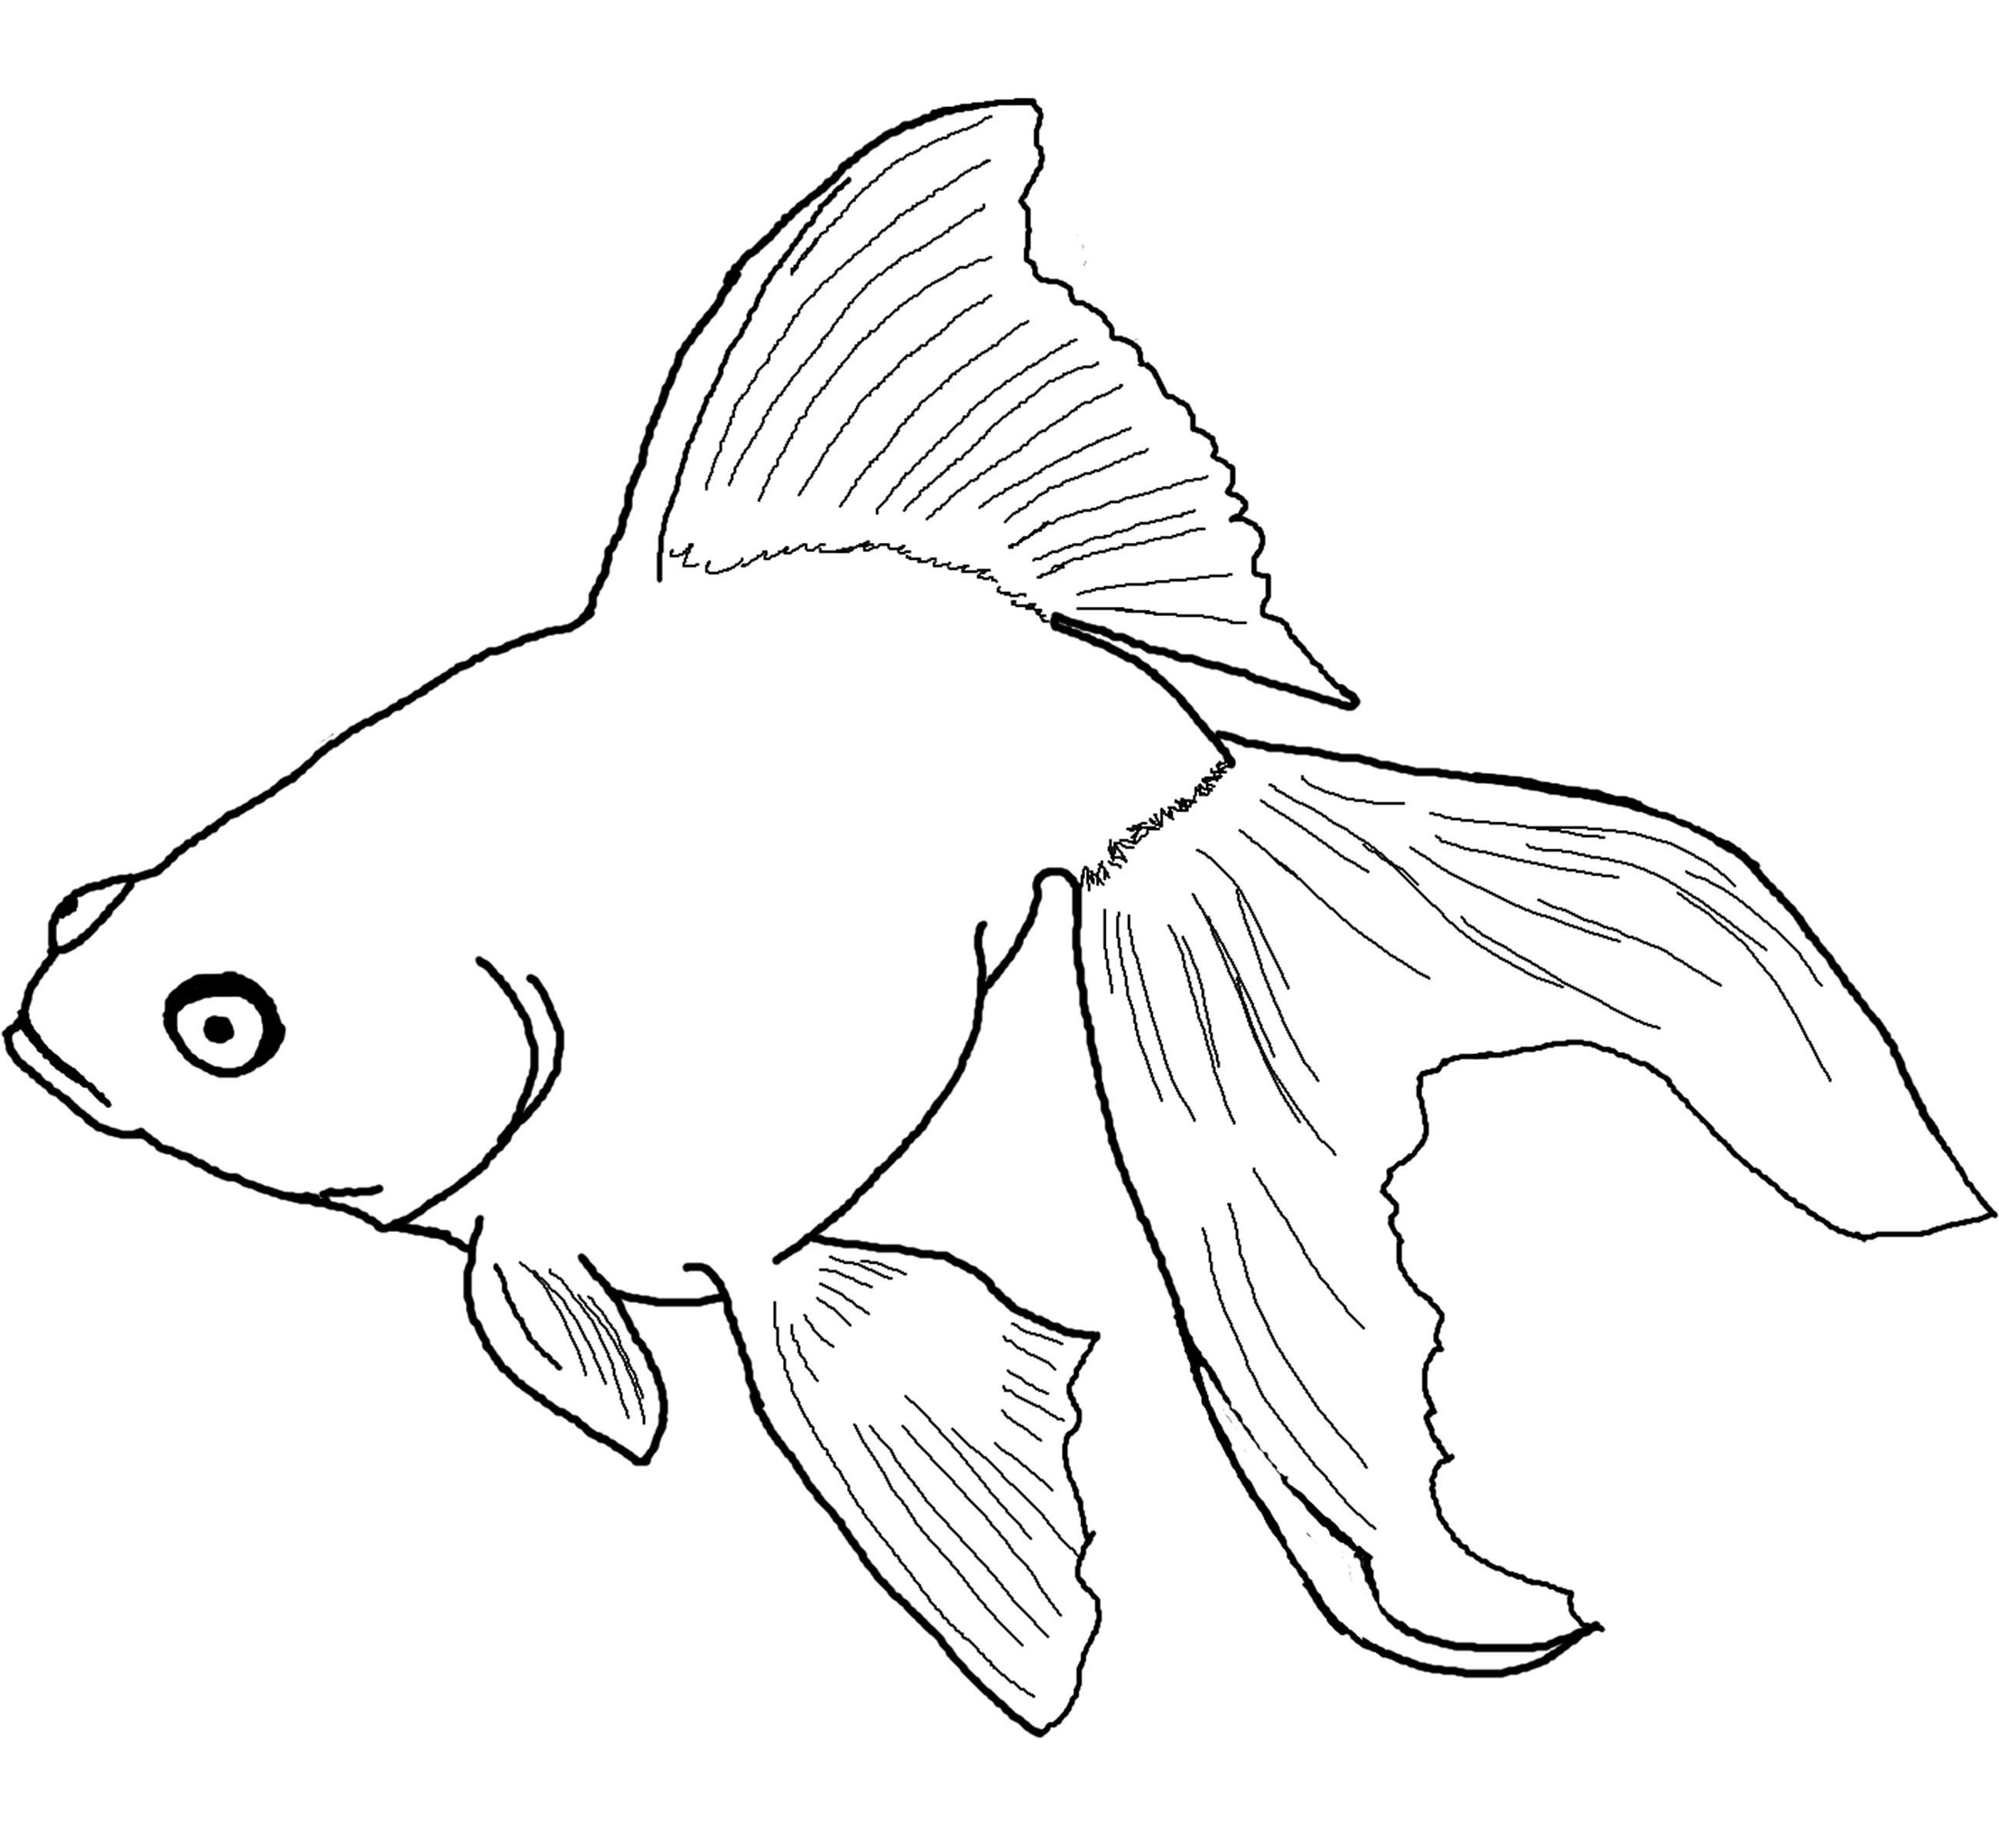 Printable coloring pages koi fish - Fish Coloring Pages Angel Fish Coloring Page